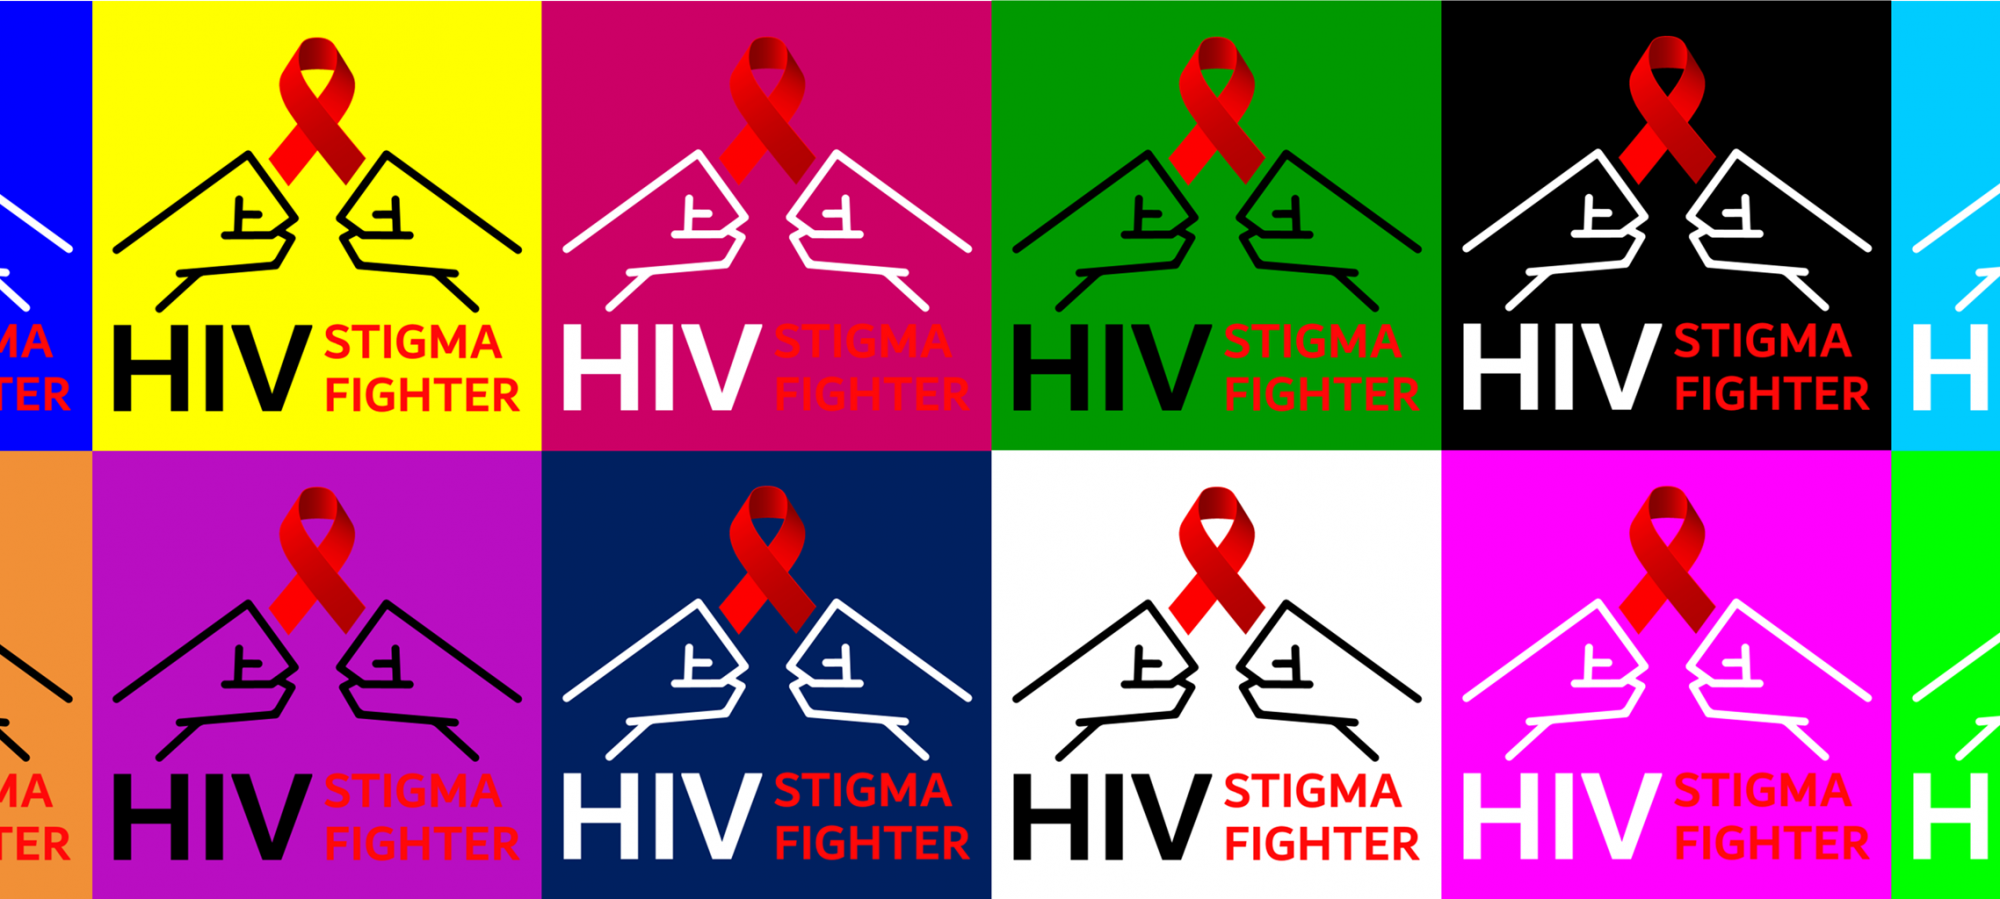 hivstigmafighter